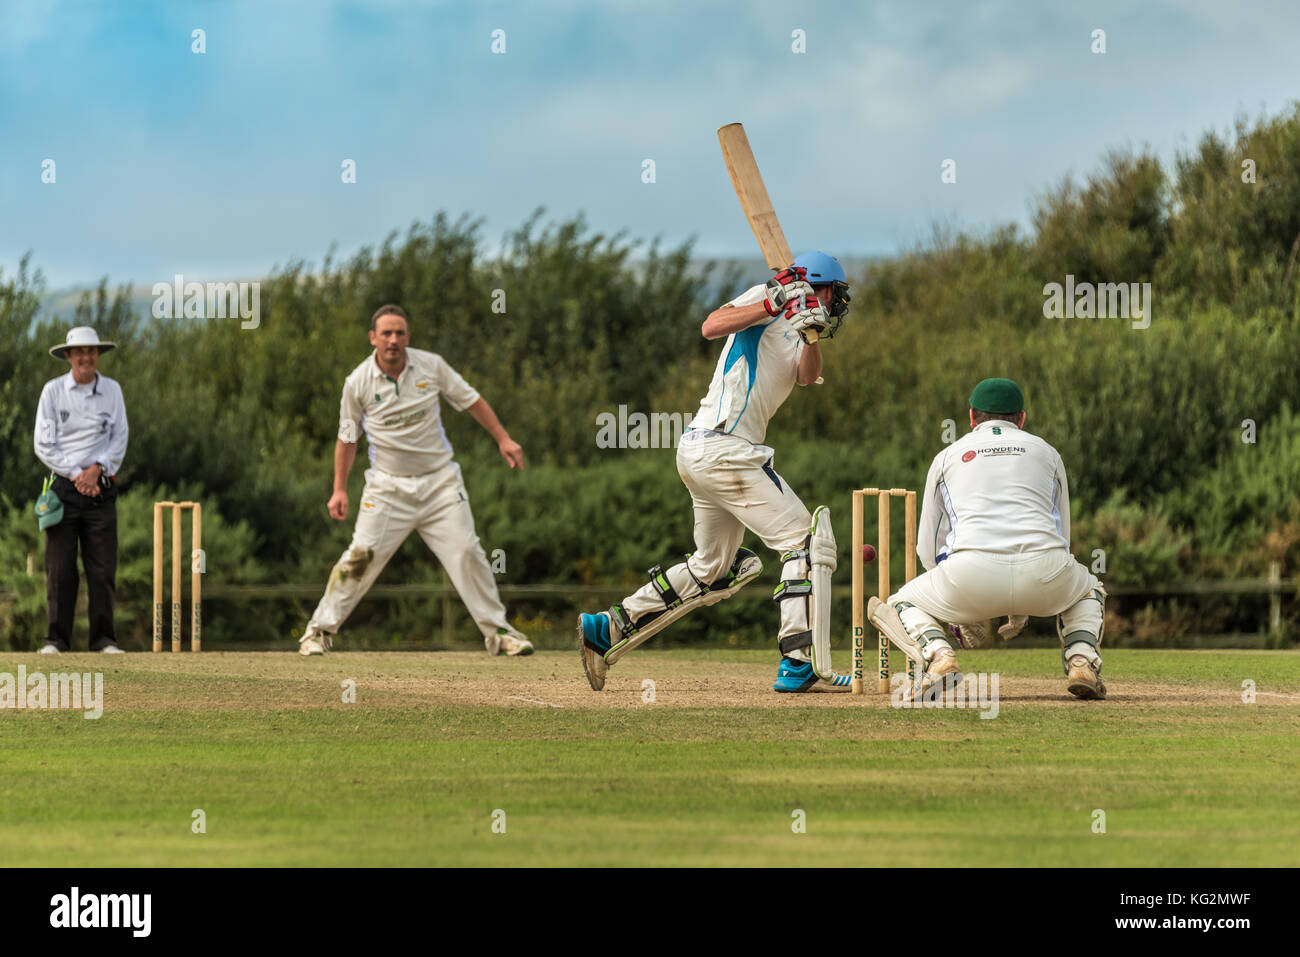 A batsman plays a shot during a Sunday League match between two local Cricket teams. - Stock Image